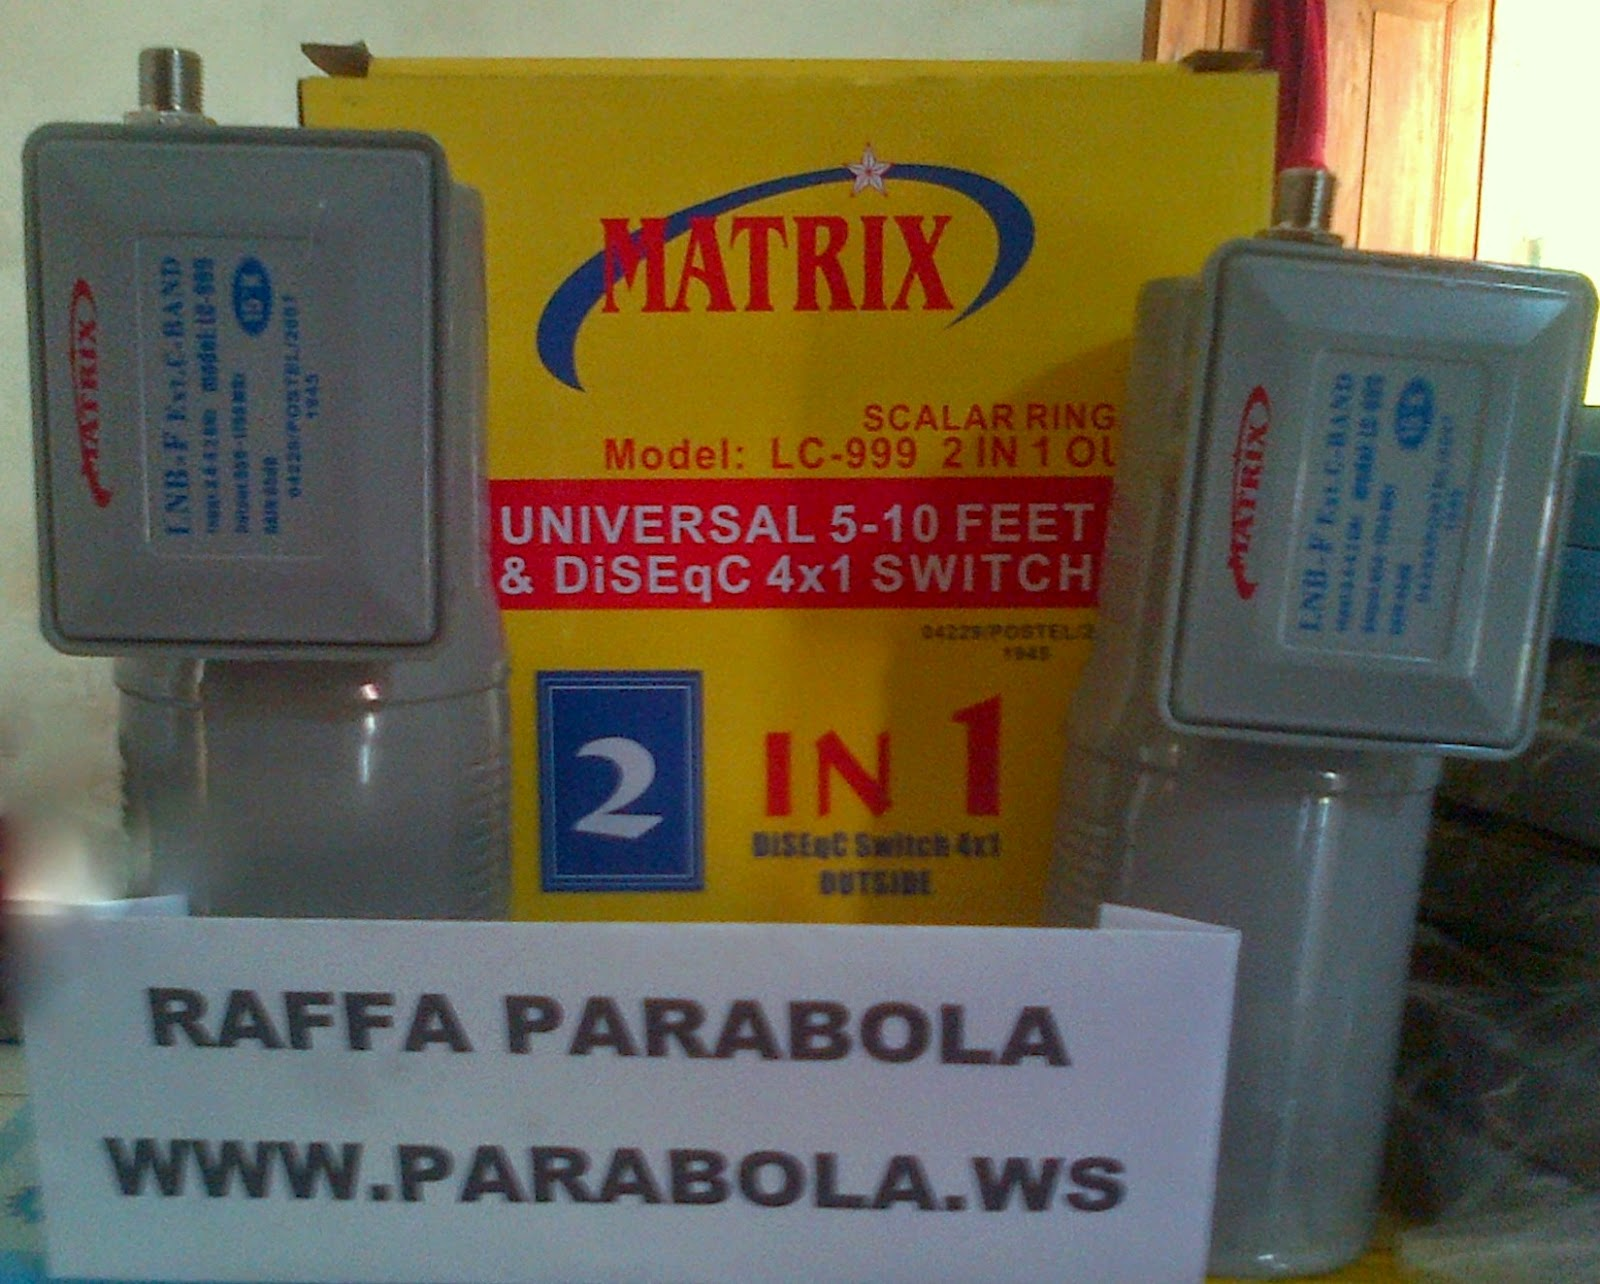 LNBF C Band Matrix 2 Satelit 1 Reciever parabola